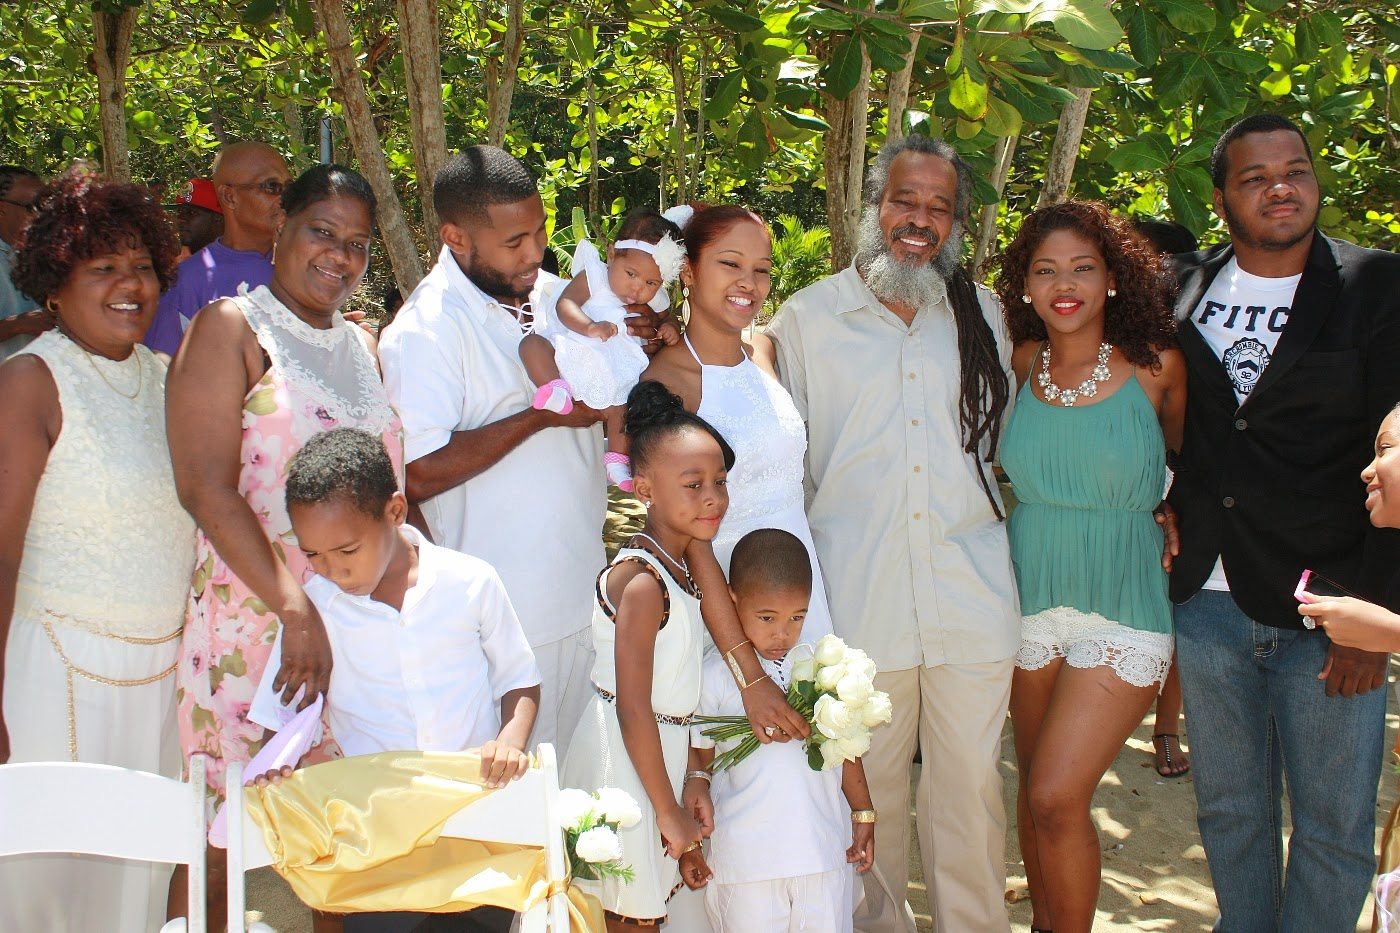 Keith rowley wedding